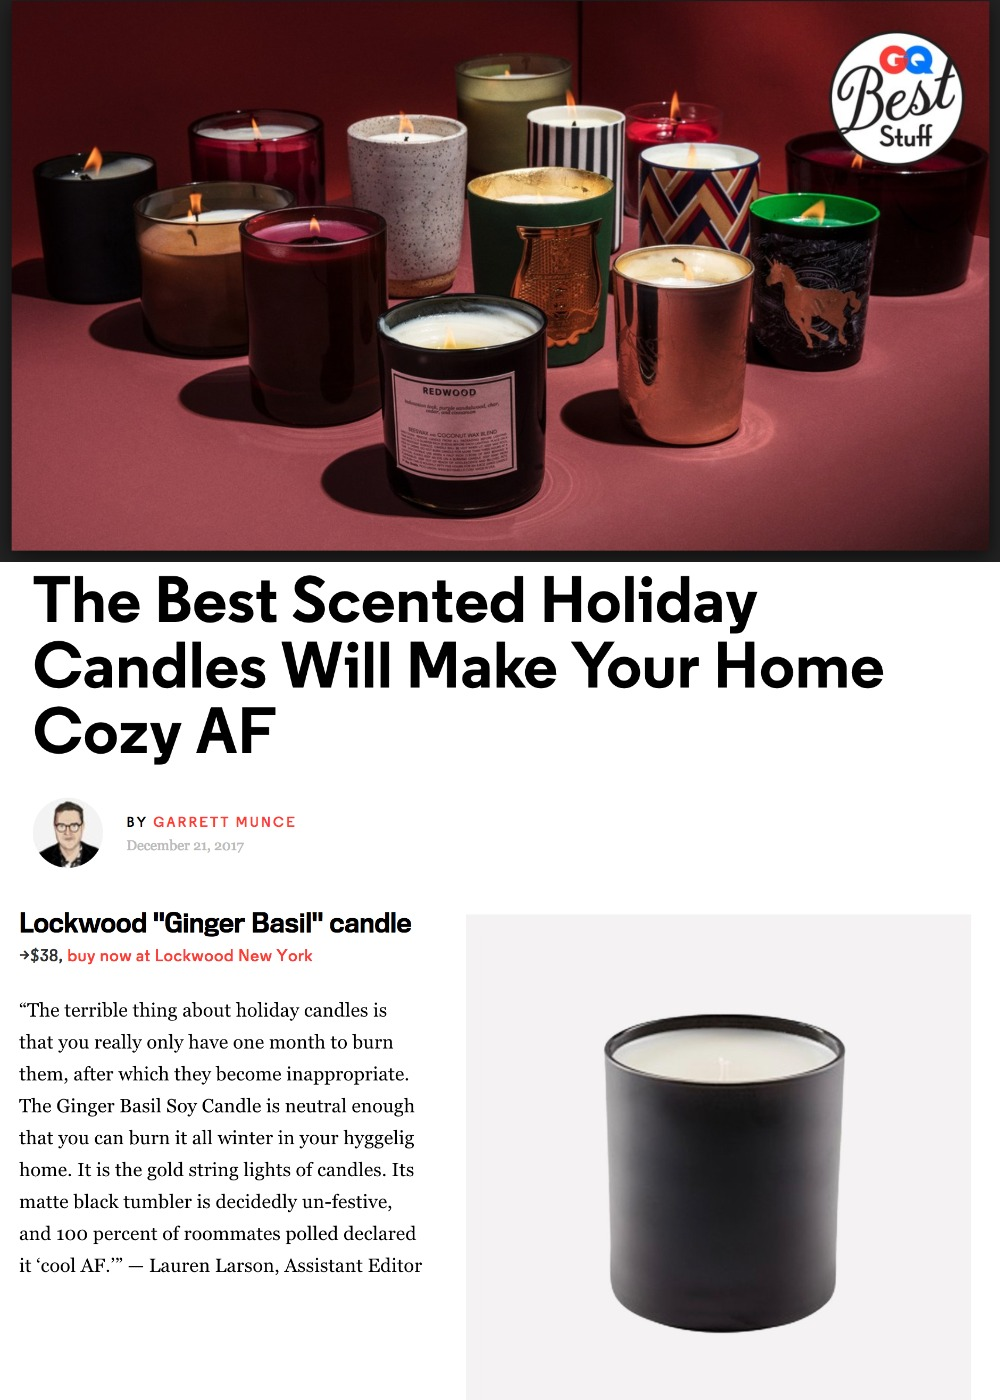 GQ: Best Stuff - Holiday Candles